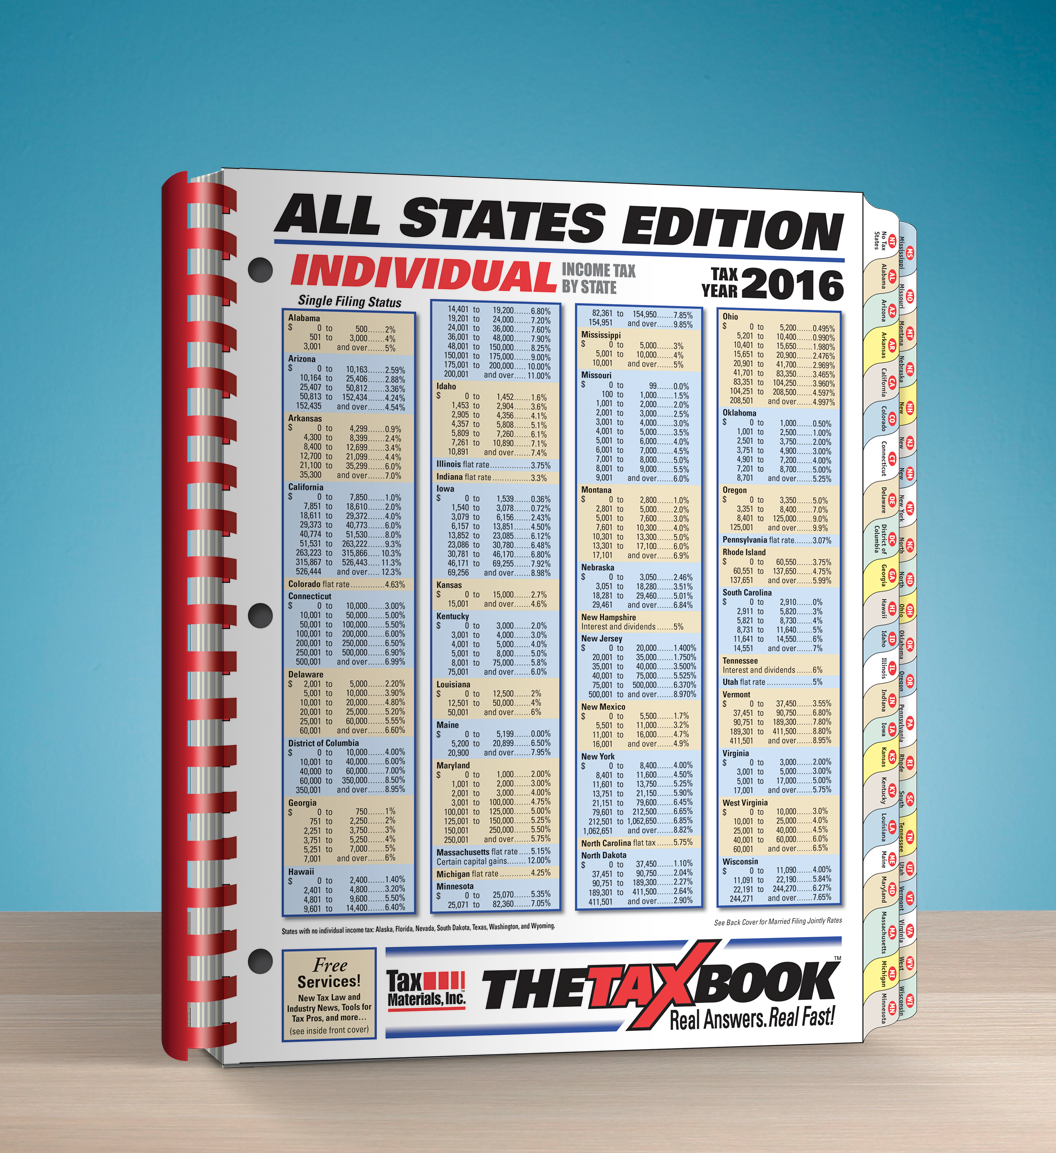 TheTaxBook All States Edition Fast Answer Tax Book (2016) - #3687